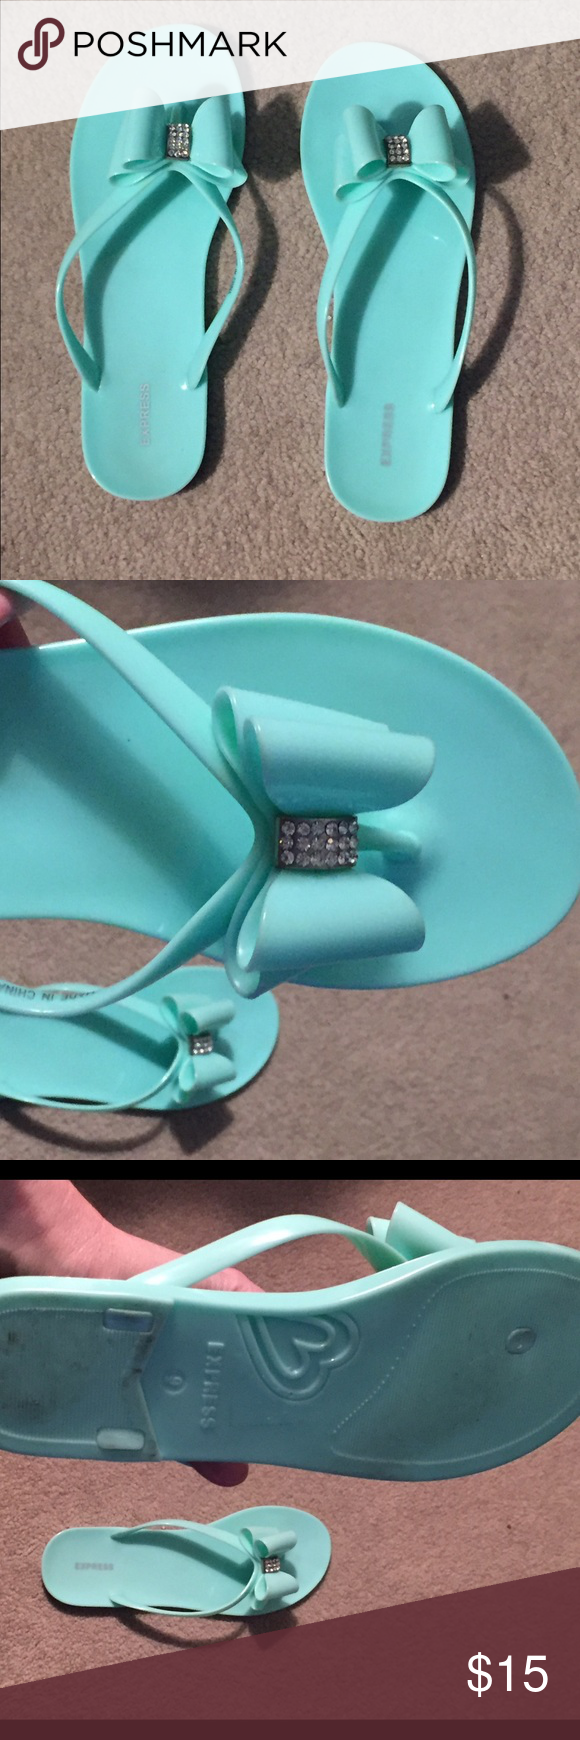 Jeweled Jelly Bow Flip Flops Jeweled jelly bow flip flops in a pretty robin egg blue color. Size 9 - worn maybe once or twice. Super cute - sadly just a 1/2 size too small for me. Express Shoes Sandals